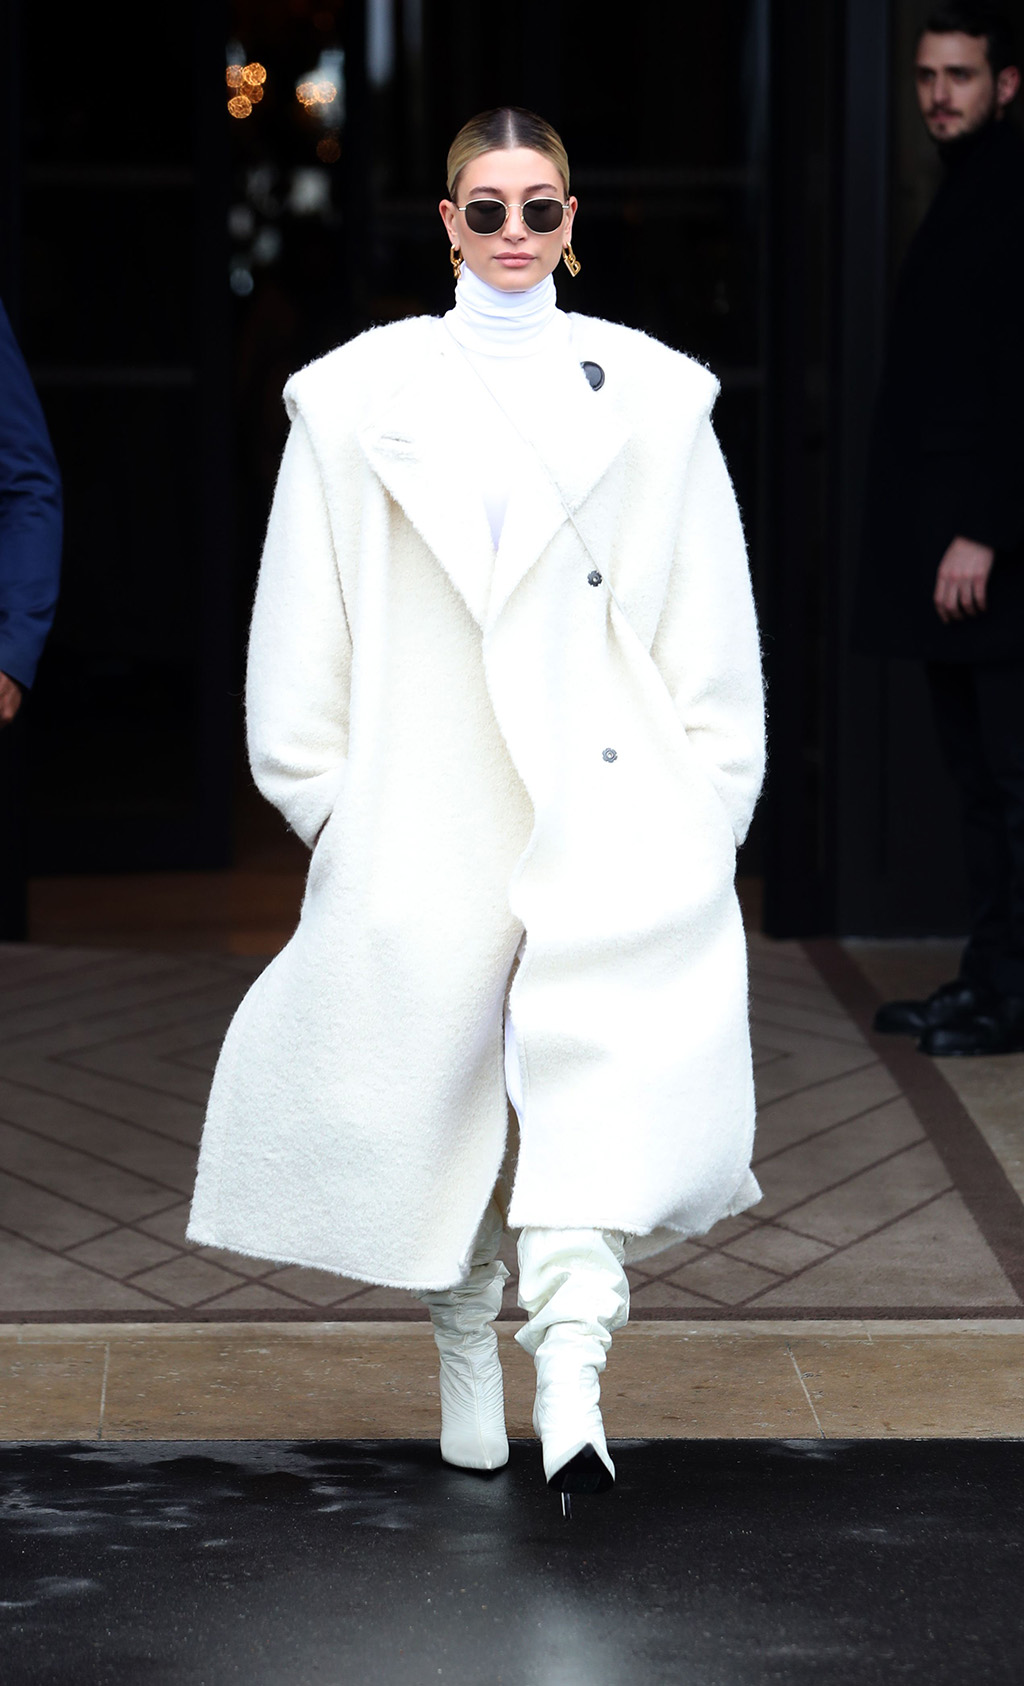 Hailey BieberCelebrities out and about, Fall Winter 2020, Paris Fashion Week, France - 27 Feb 2020